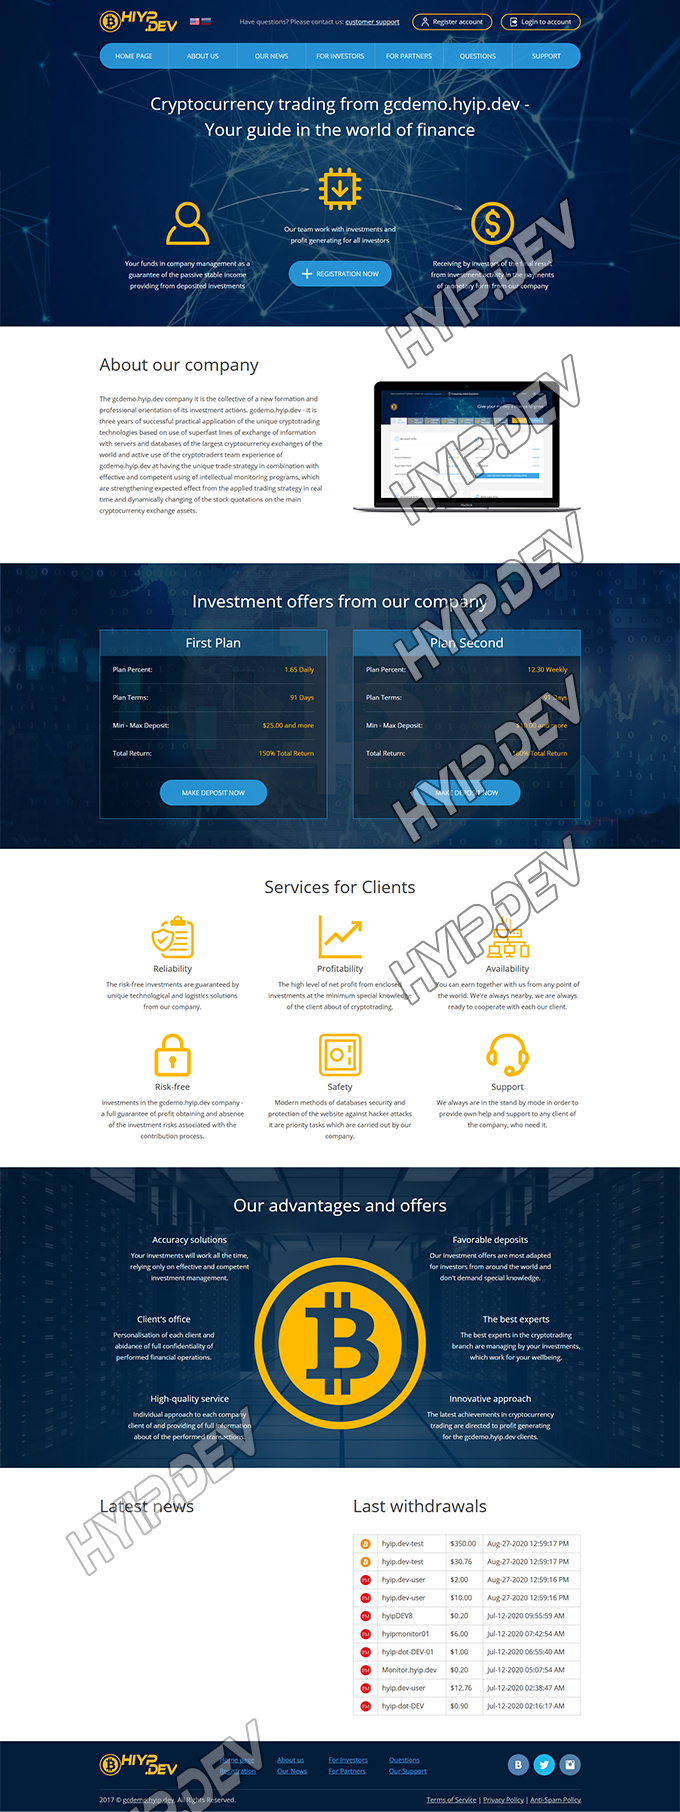 goldcoders hyip template no. 177, home page screenshot